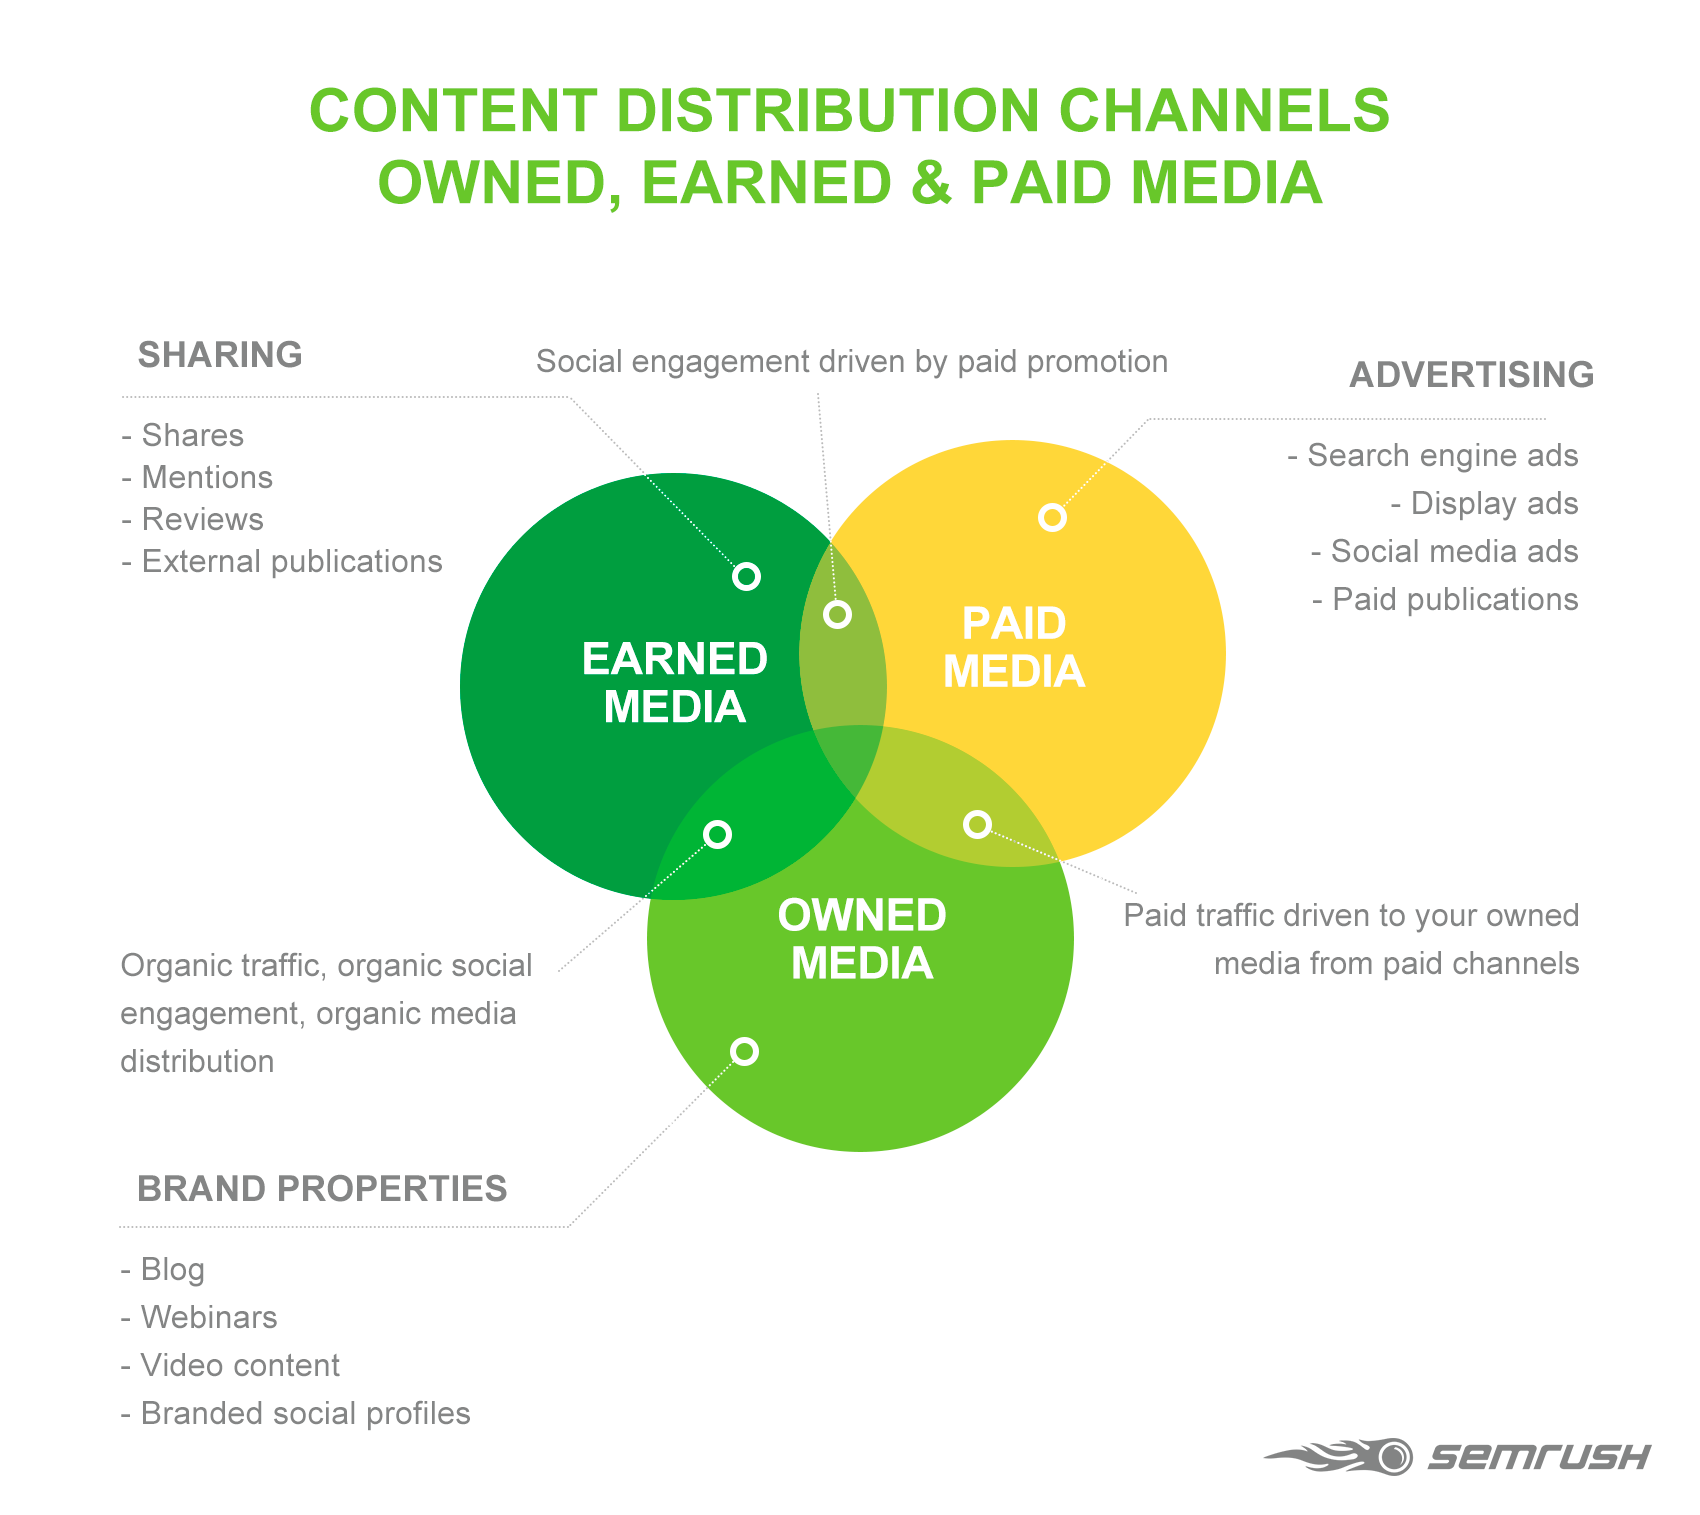 Content Distribution Channels: Owned, Earned and Paid Media